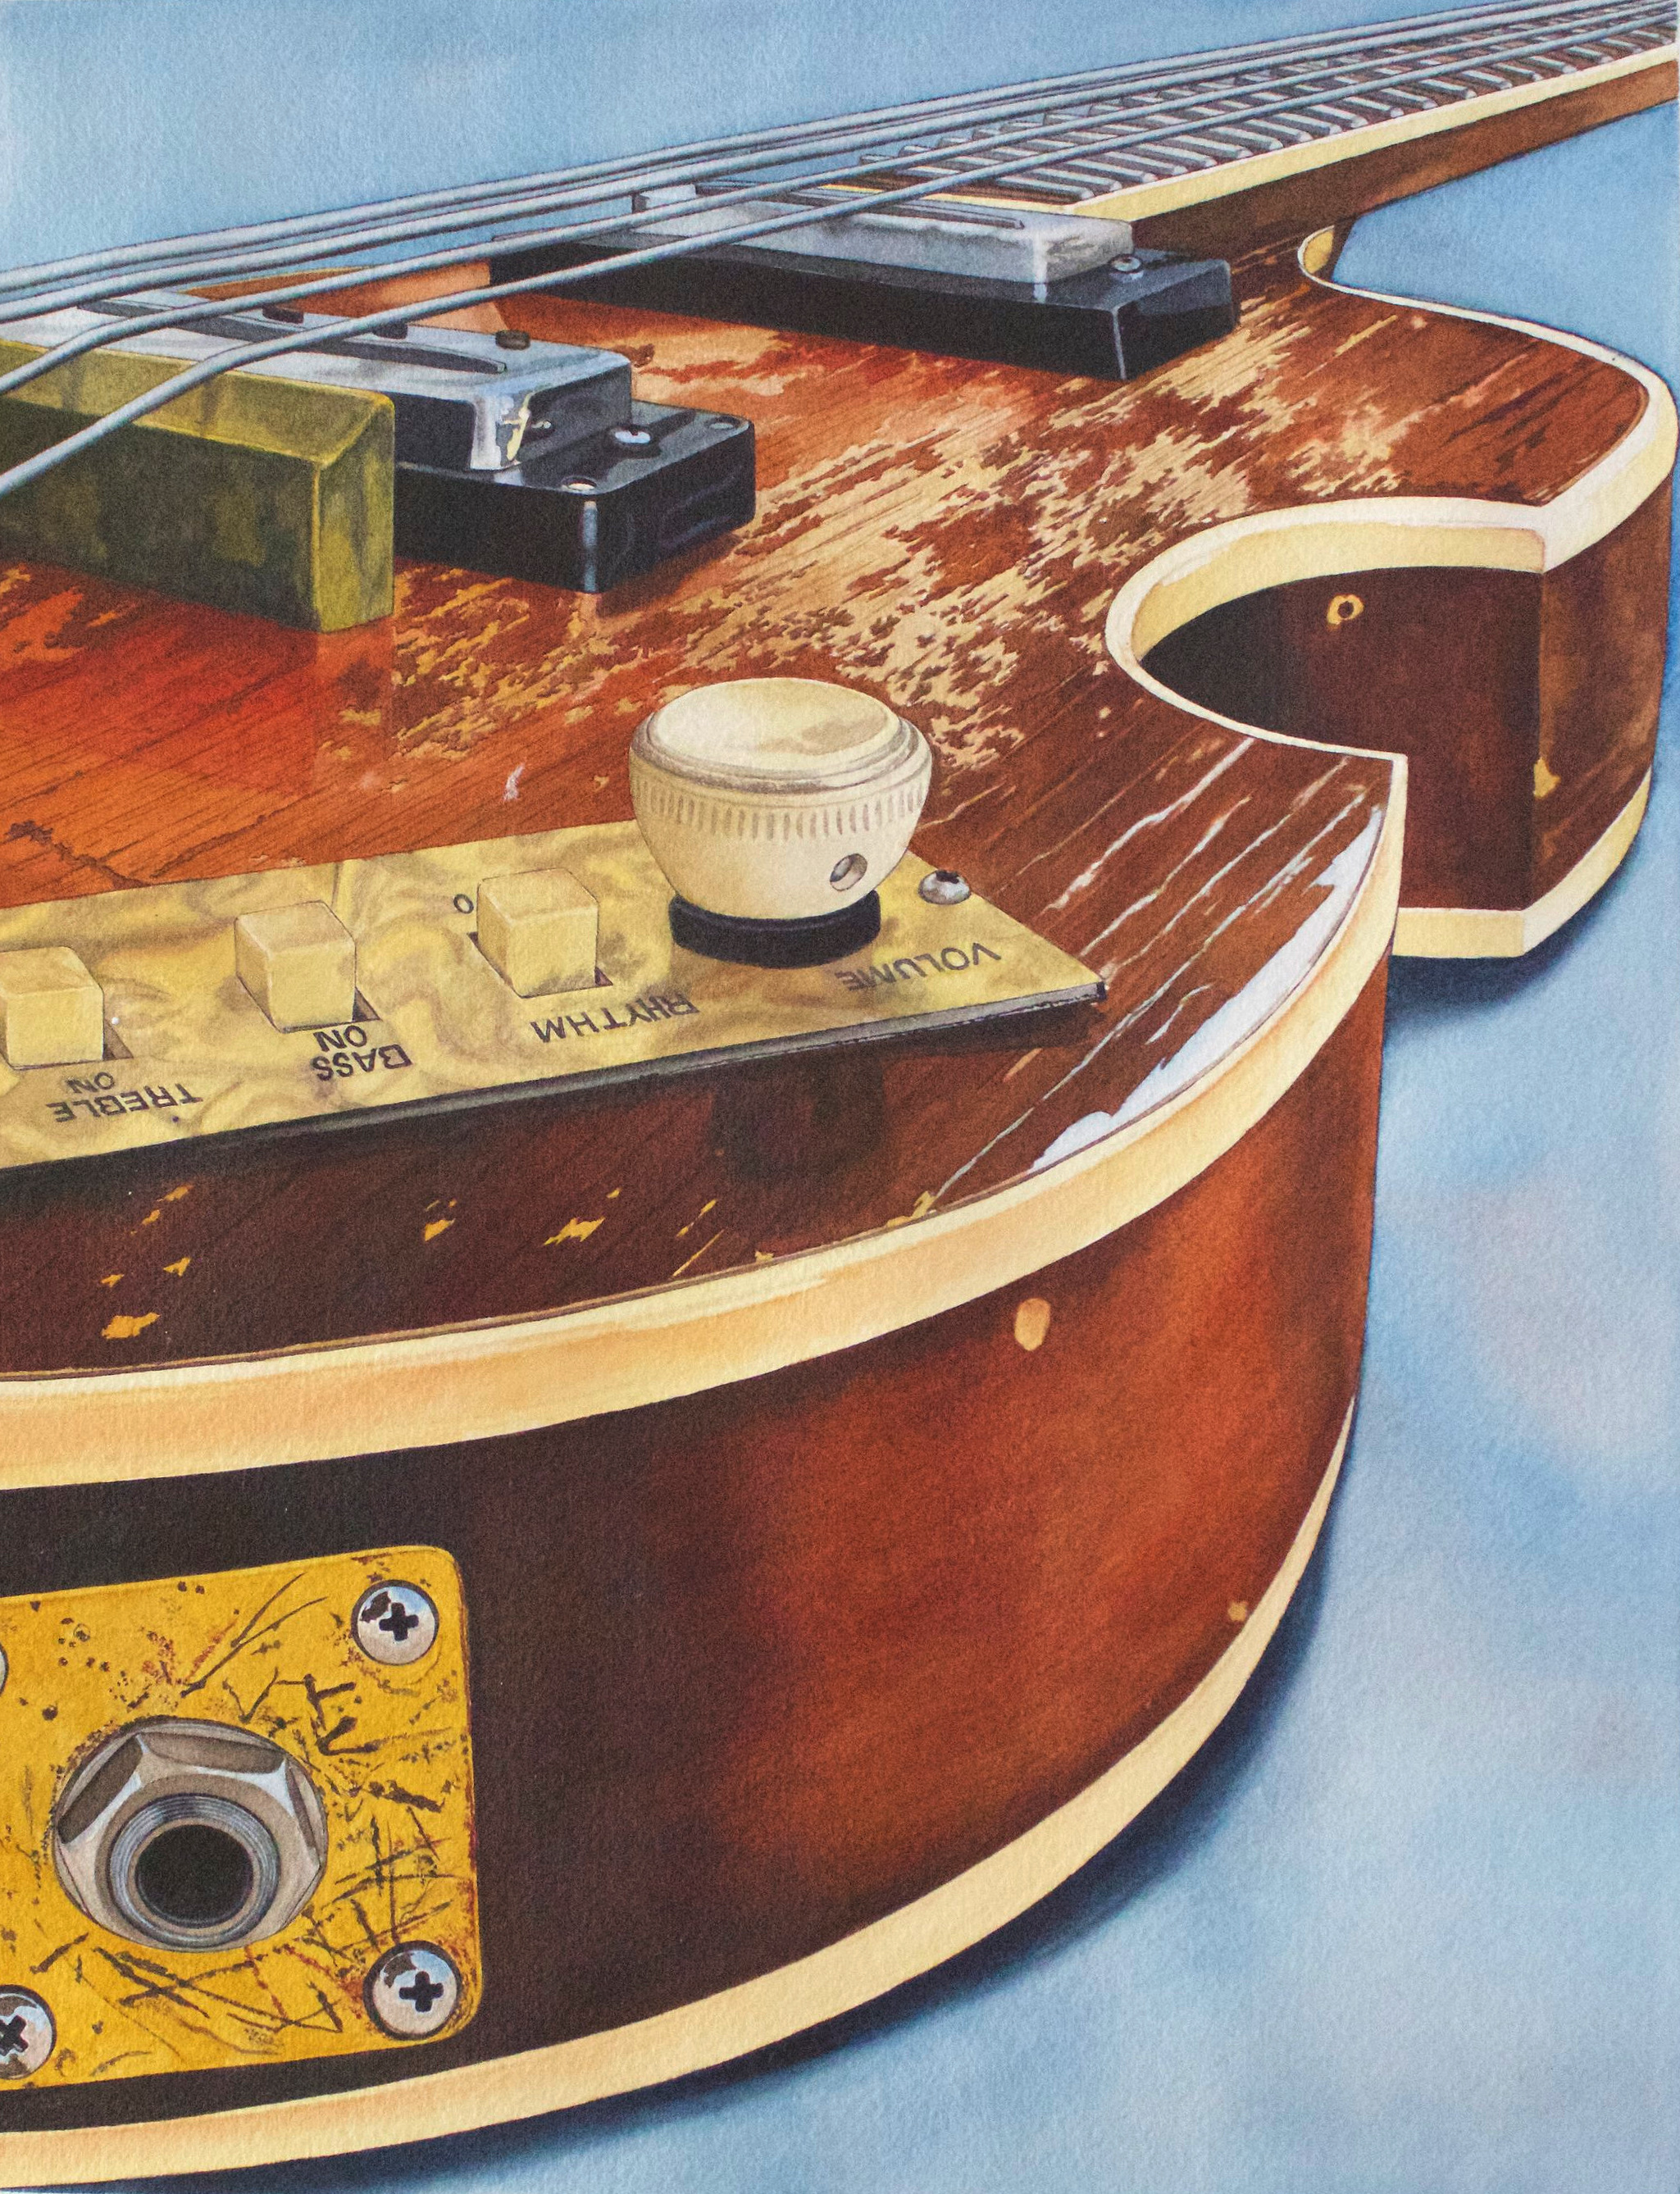 """NOW AVAILABLE! 'RODE HARD AND PUT UP WET"""" - The most recent of my series of guitar paintings, depicts the well worn Hofner bass of my friend Steve Stoeckel of the world renowned band The Spongetones. The original water color is available, as well as Giclee prints. Includes a Spongetones photo by Laura Sessions Tinnel signed by Steve himself! See in Originals, and look for the print in Other Subjects."""